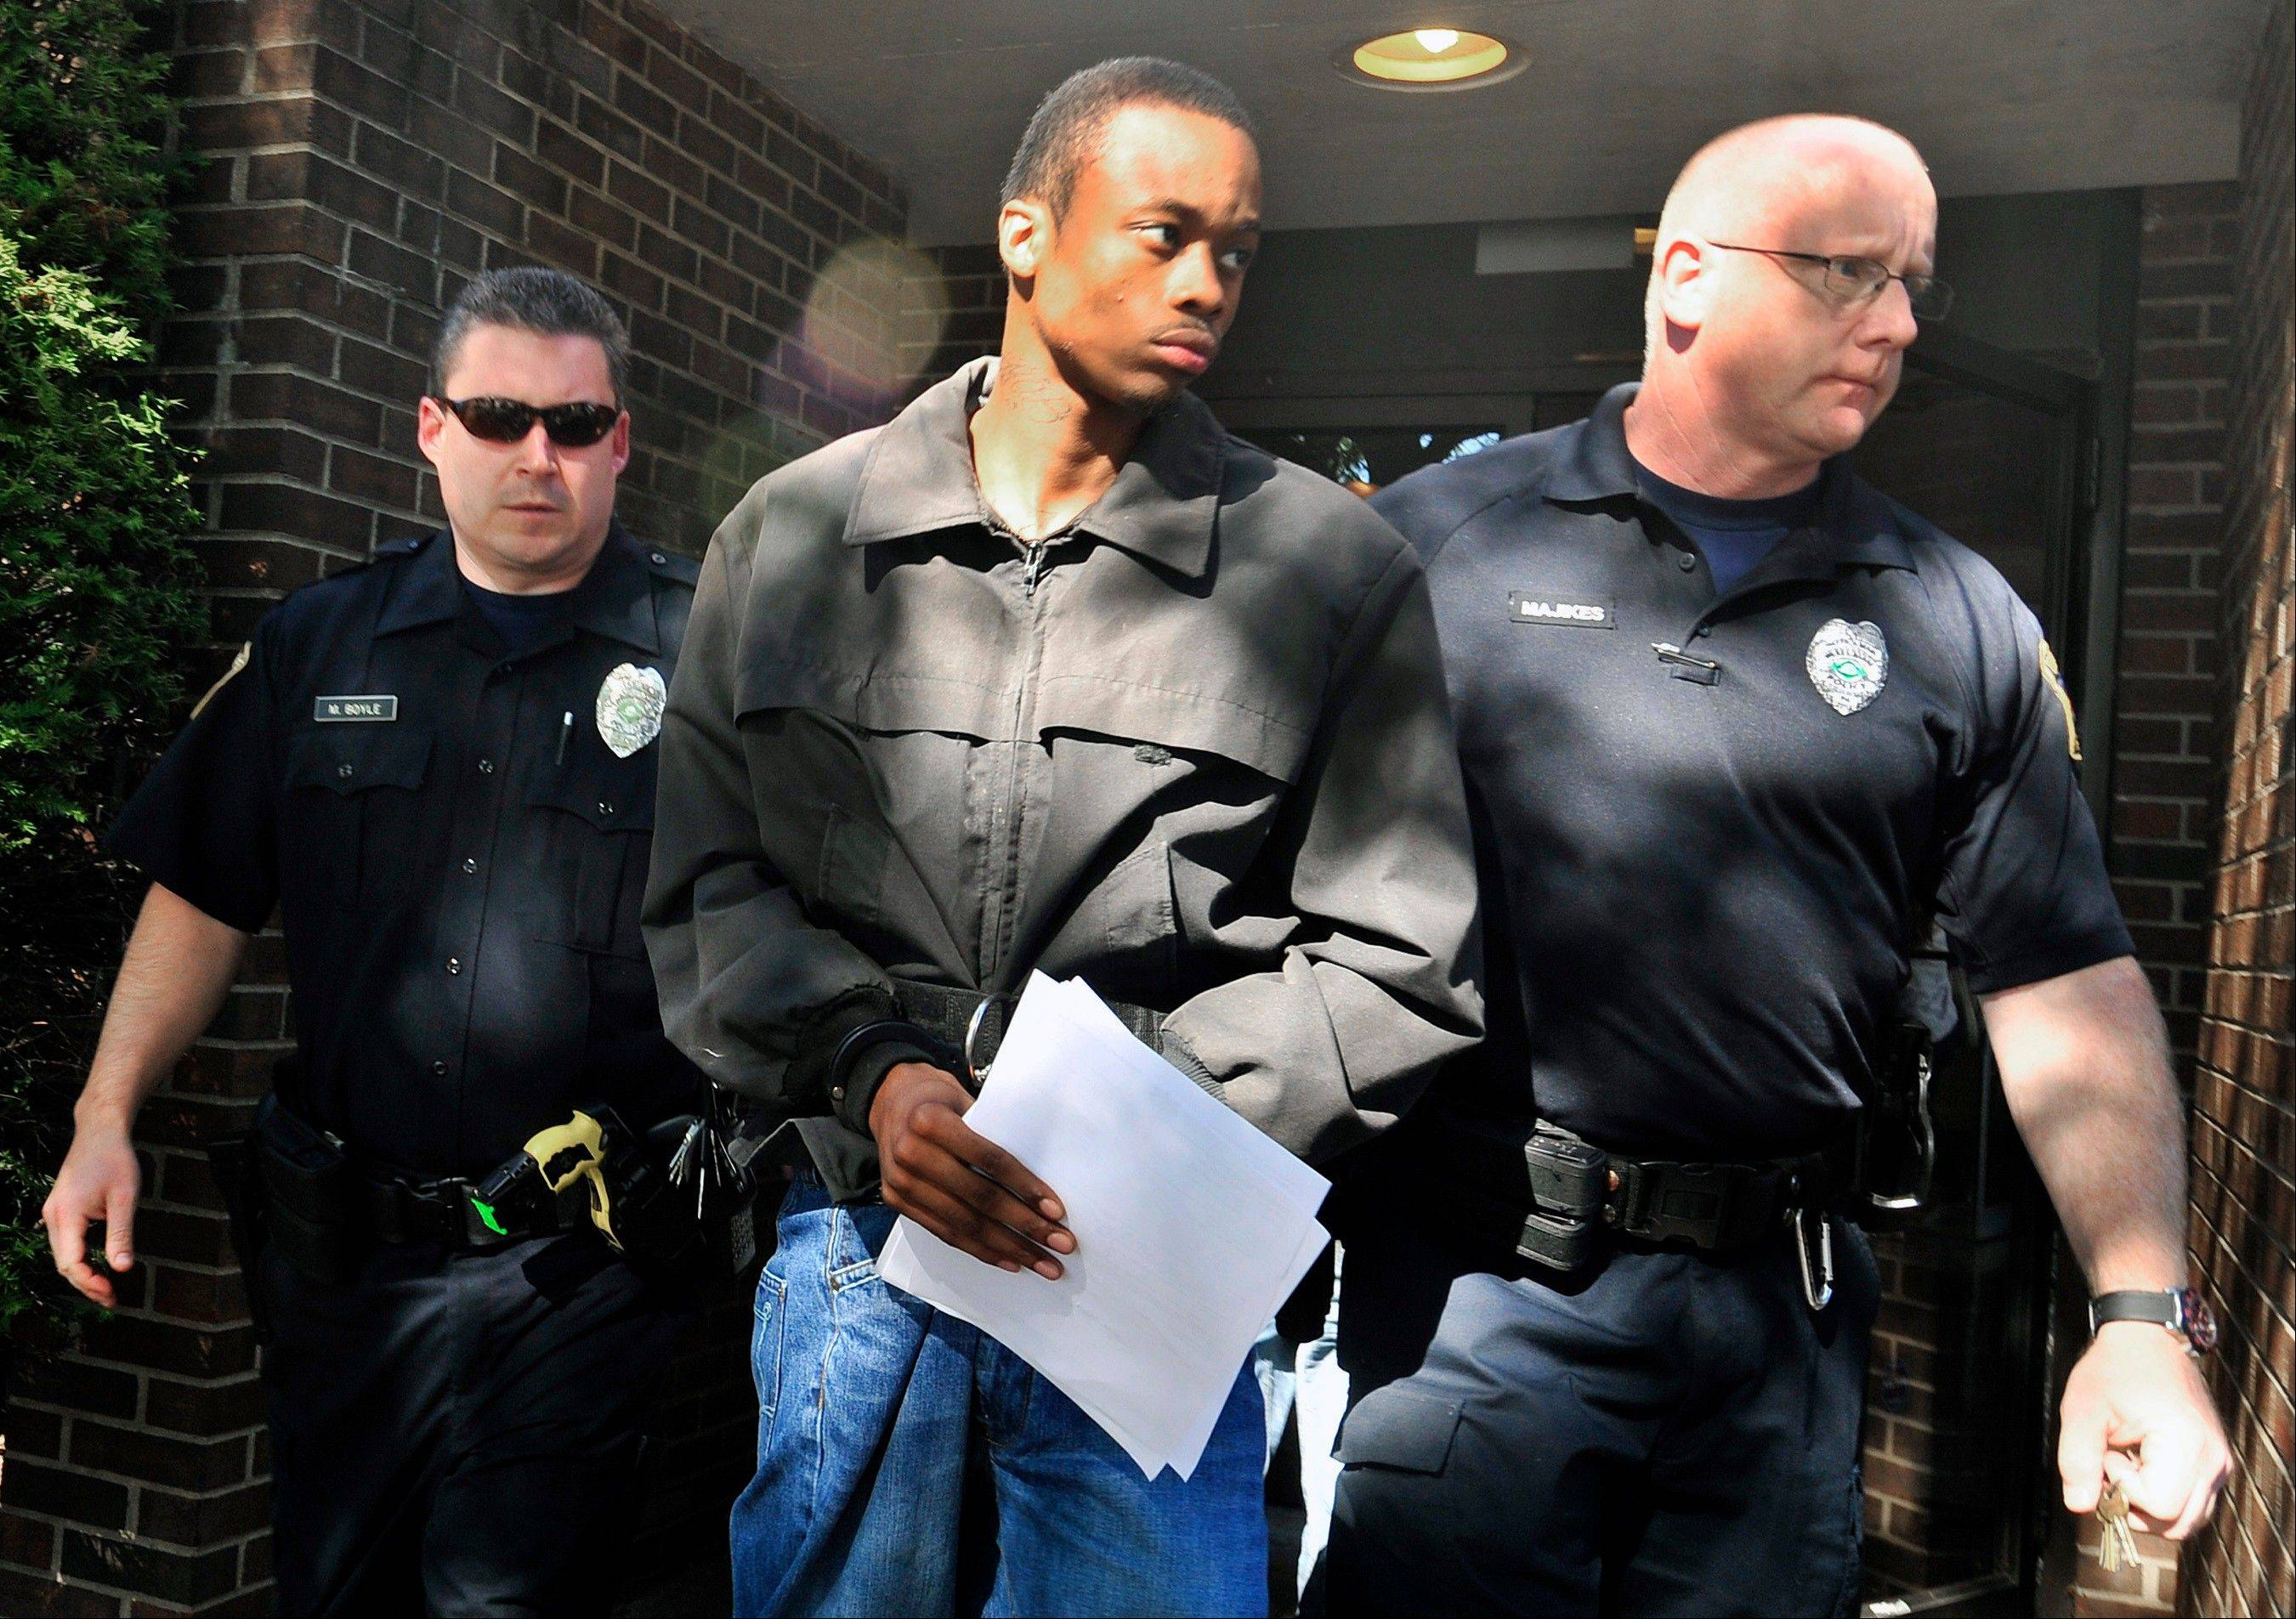 Daquan Breland is led out of Magistrate Rick Cronauers office Friday, in Wilkes-Barre, Pa. Breland, 23, and Daquan Wright, 19, were arrested in northeastern Pennsylvania on Friday in connection with the weekend shooting death of a toddler in a stroller in New York City.